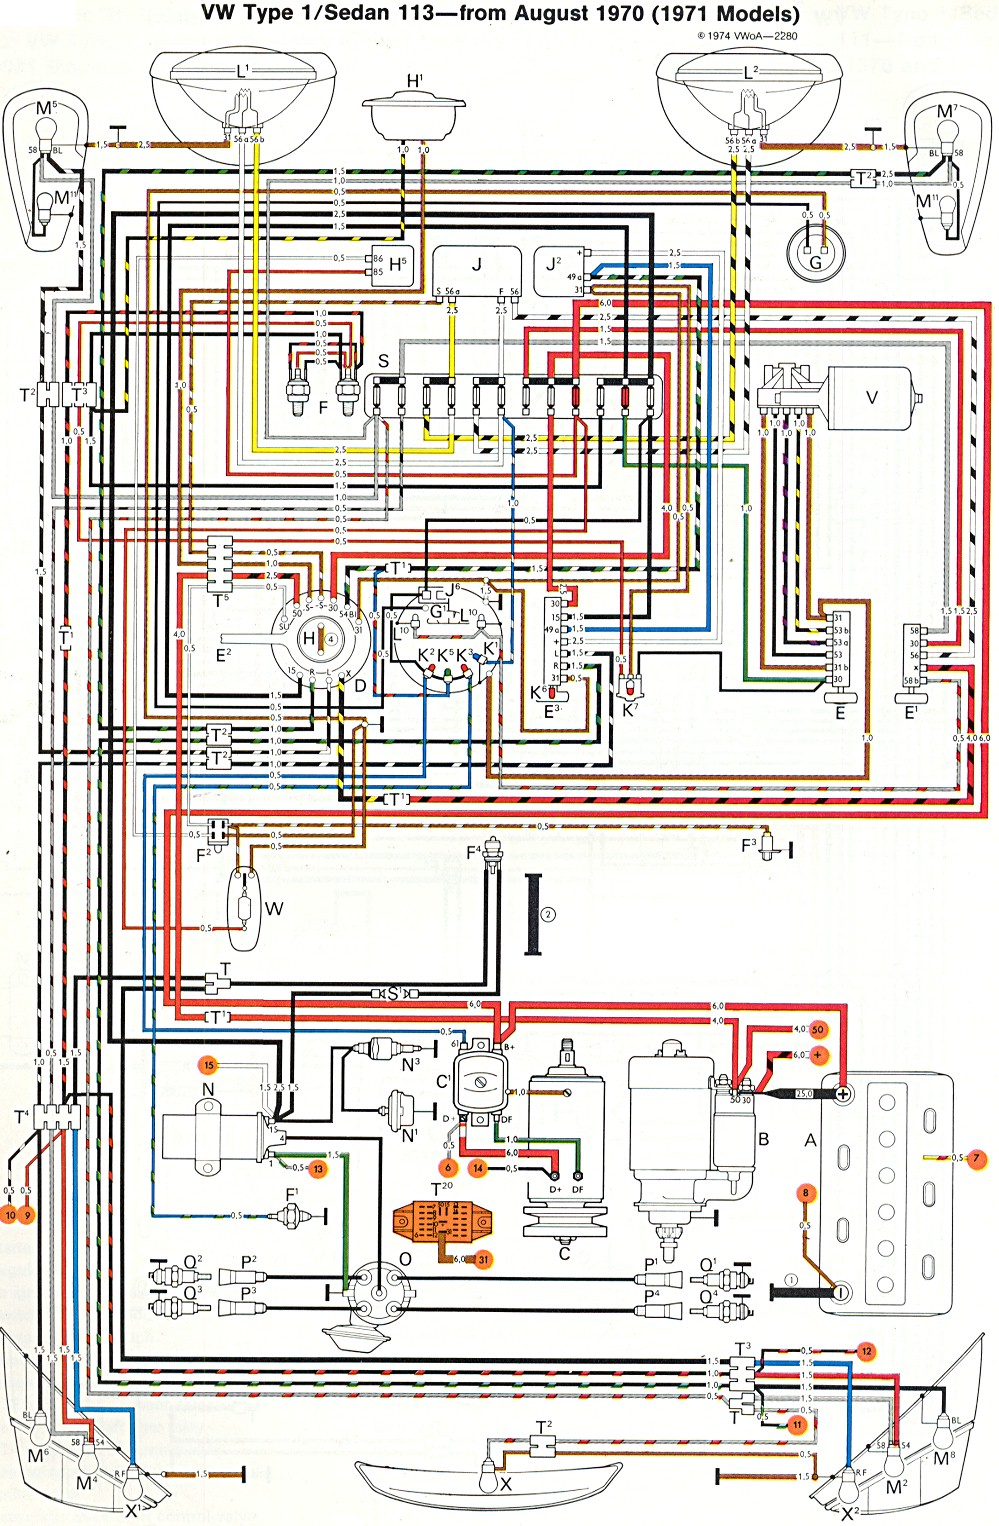 bug_super_71 2002 vw beetle wiring diagram altenator wiring diagram 2002 vw 68 VW Wiring Diagram at eliteediting.co